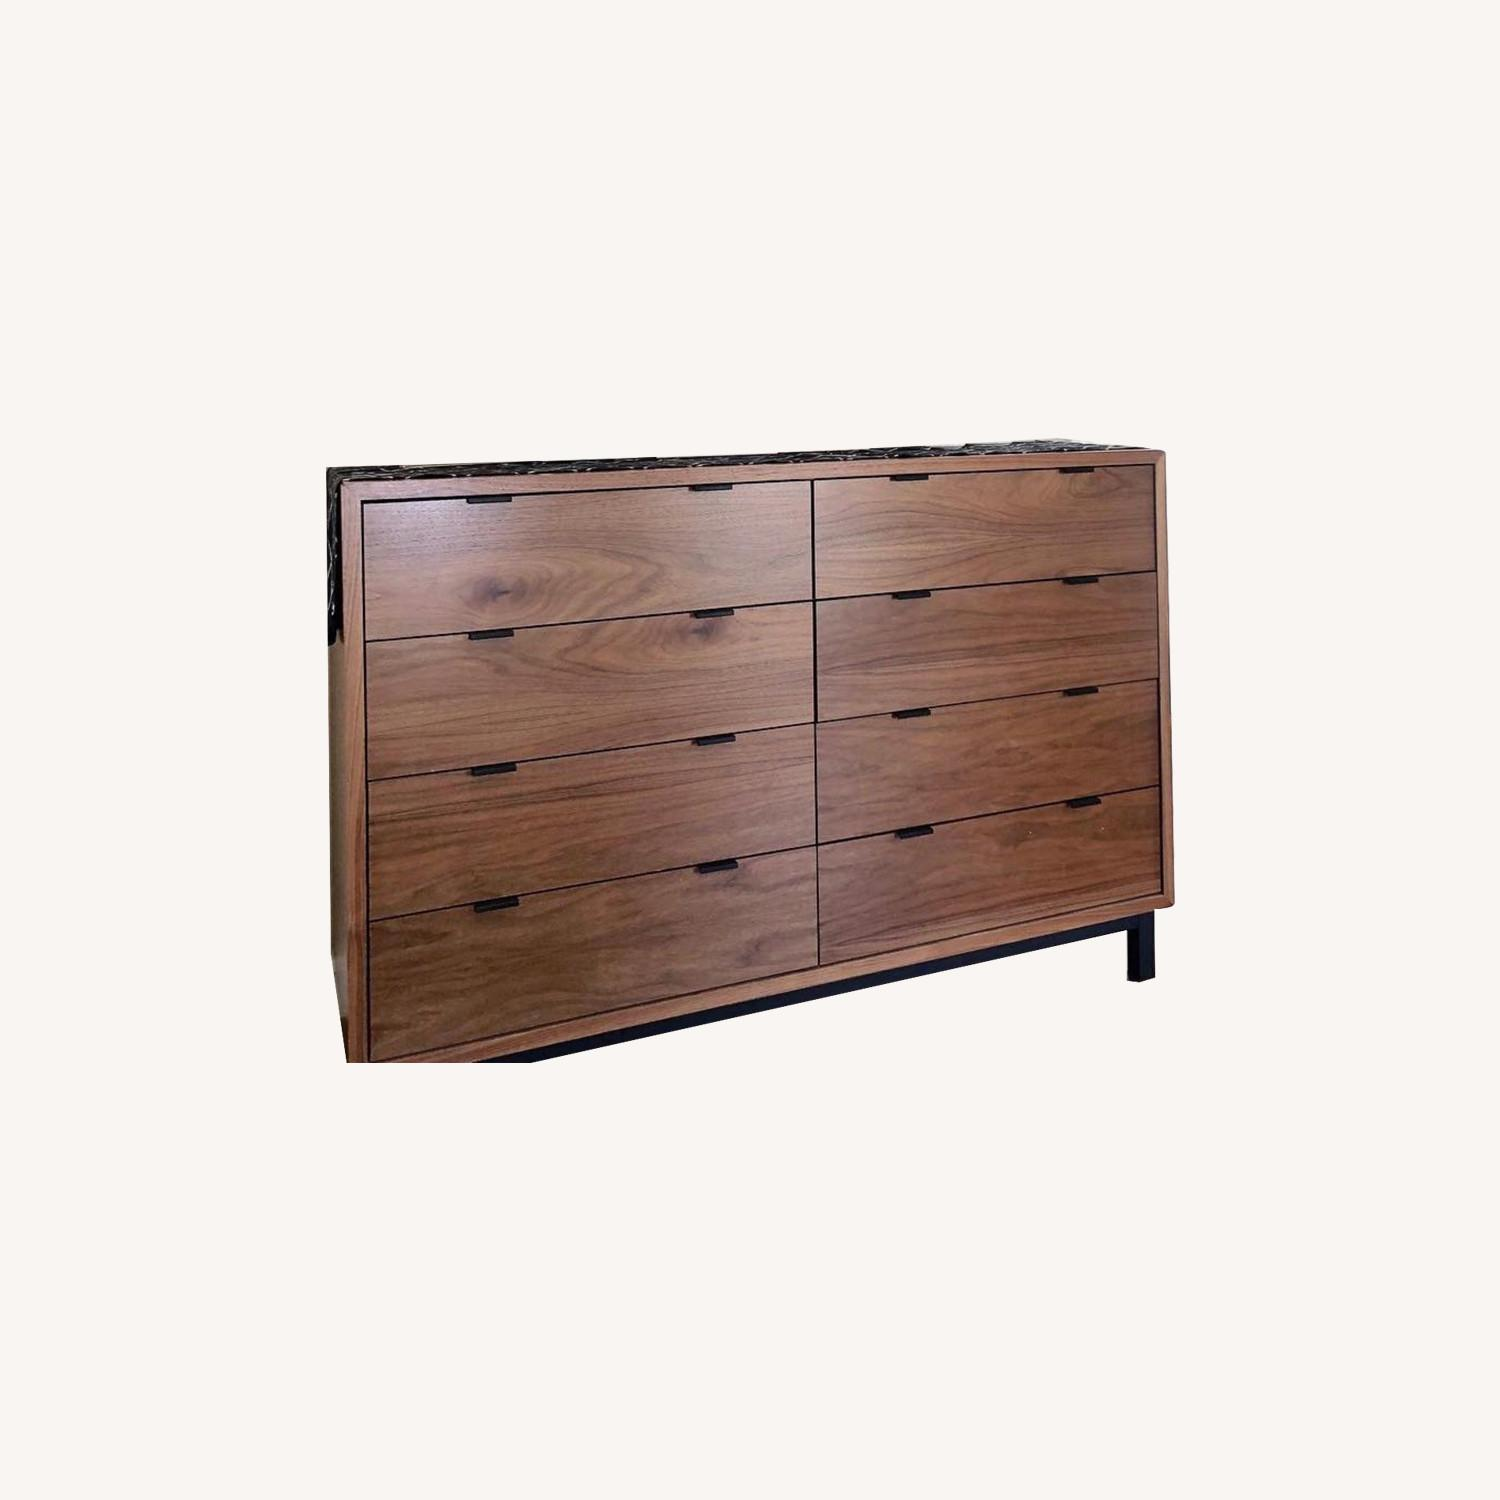 Room & Board Eight-Drawer Dresser - image-0